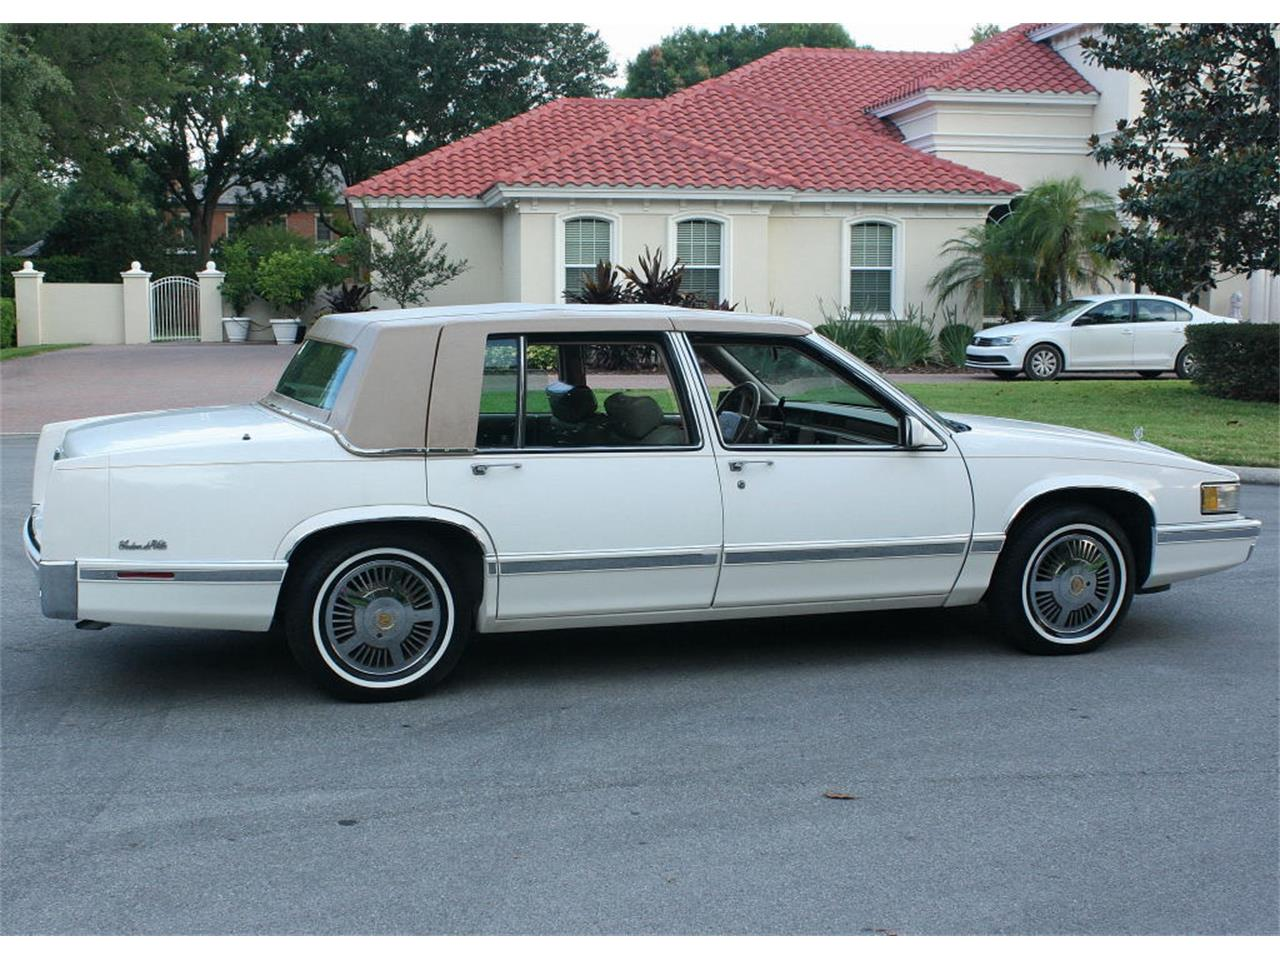 Large Picture of 1991 Cadillac Sedan Offered by MJC Classic Cars - L5XM